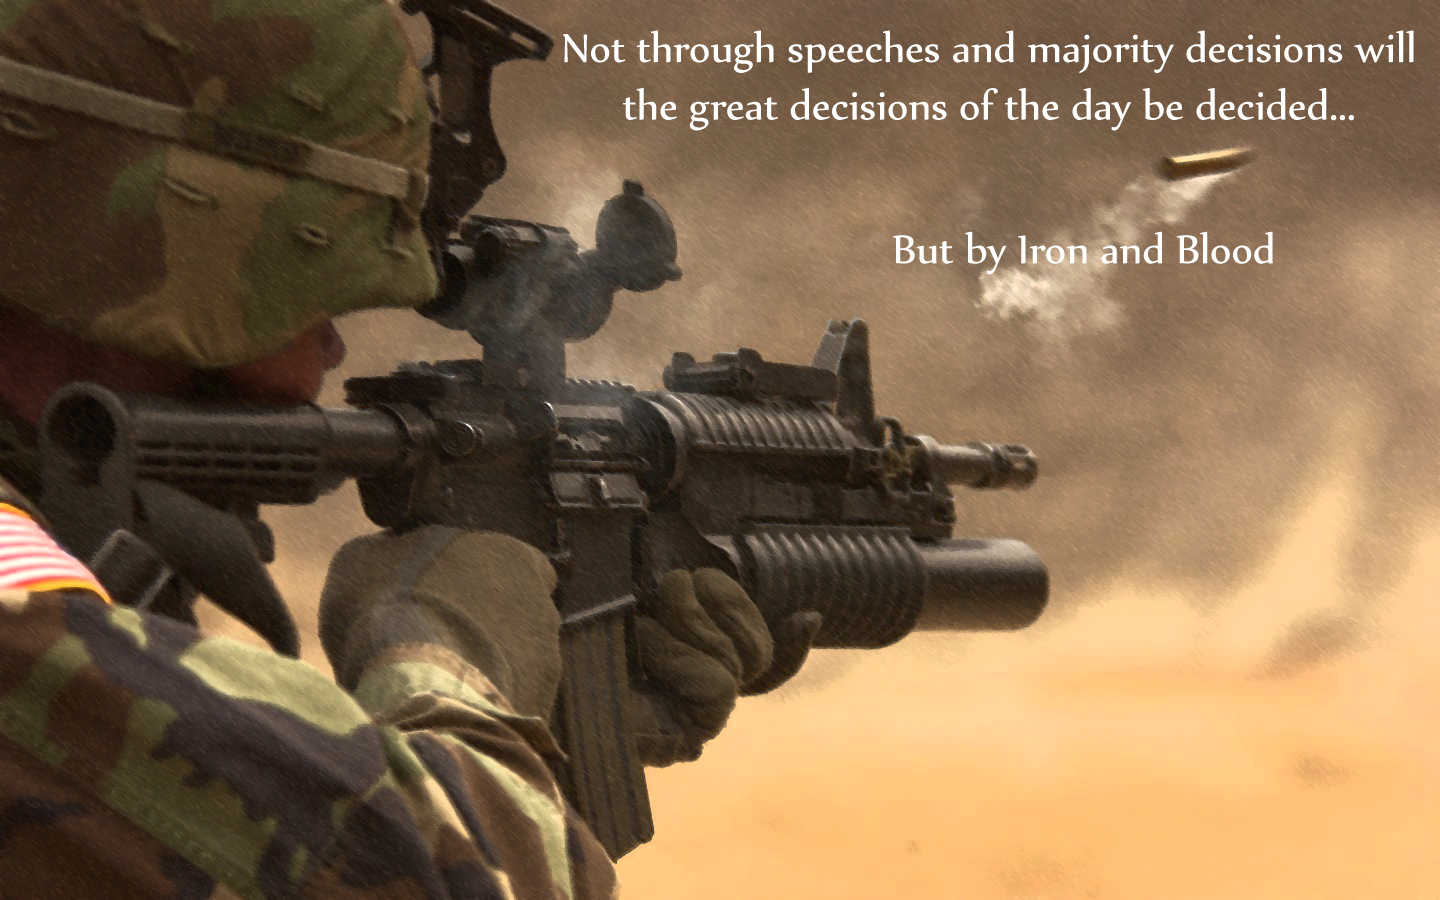 download soldiers quotes wallpaper - photo #23